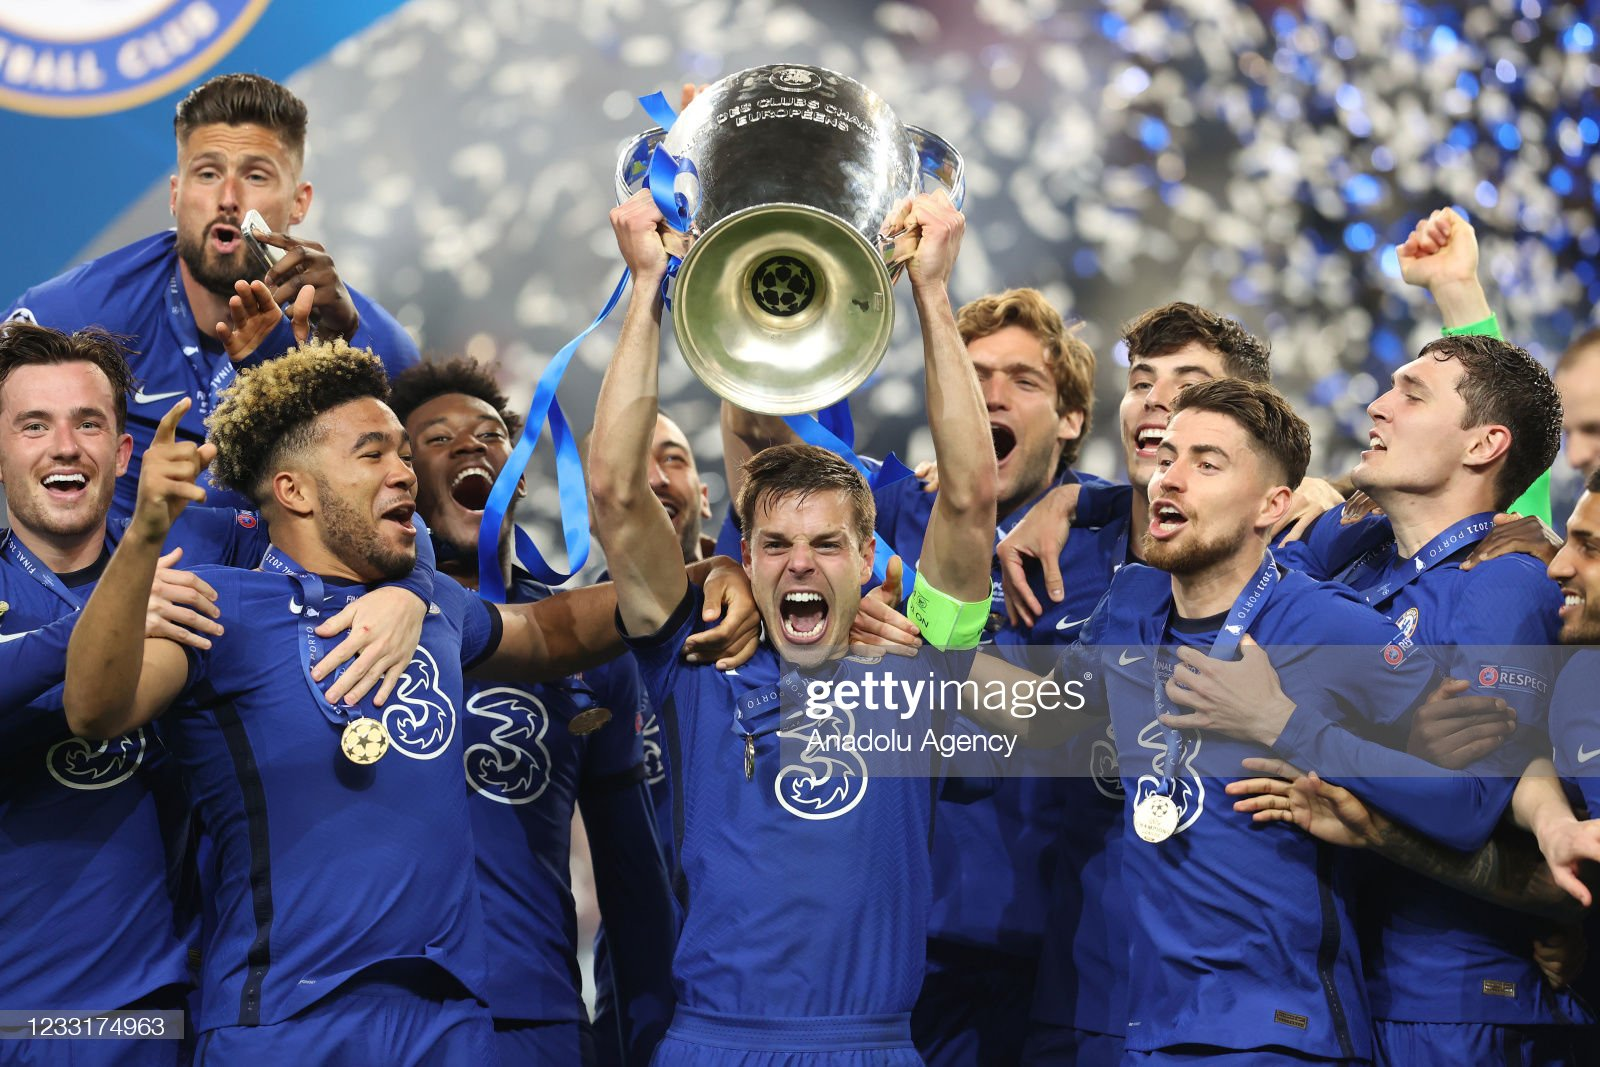 Chelsea are Champions of Europe once again